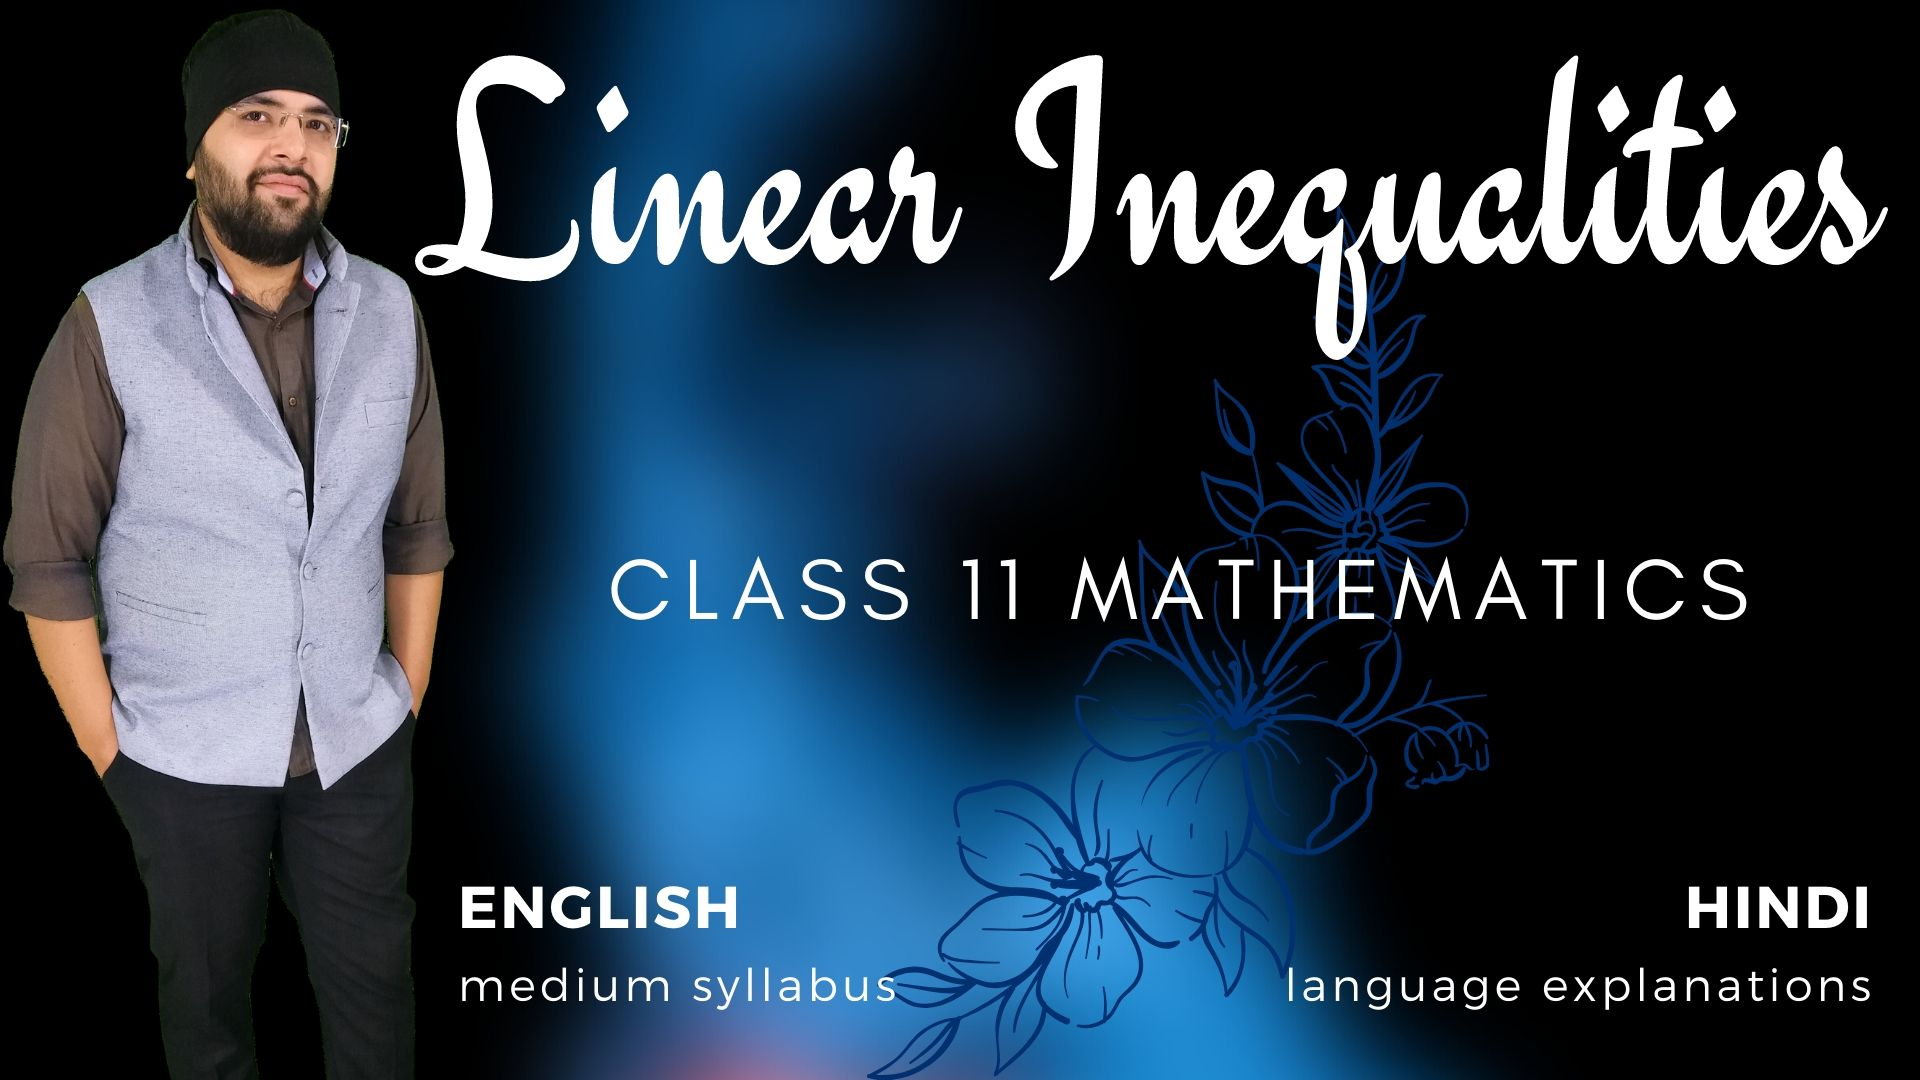 Linear Inequalities Class 11 Maths